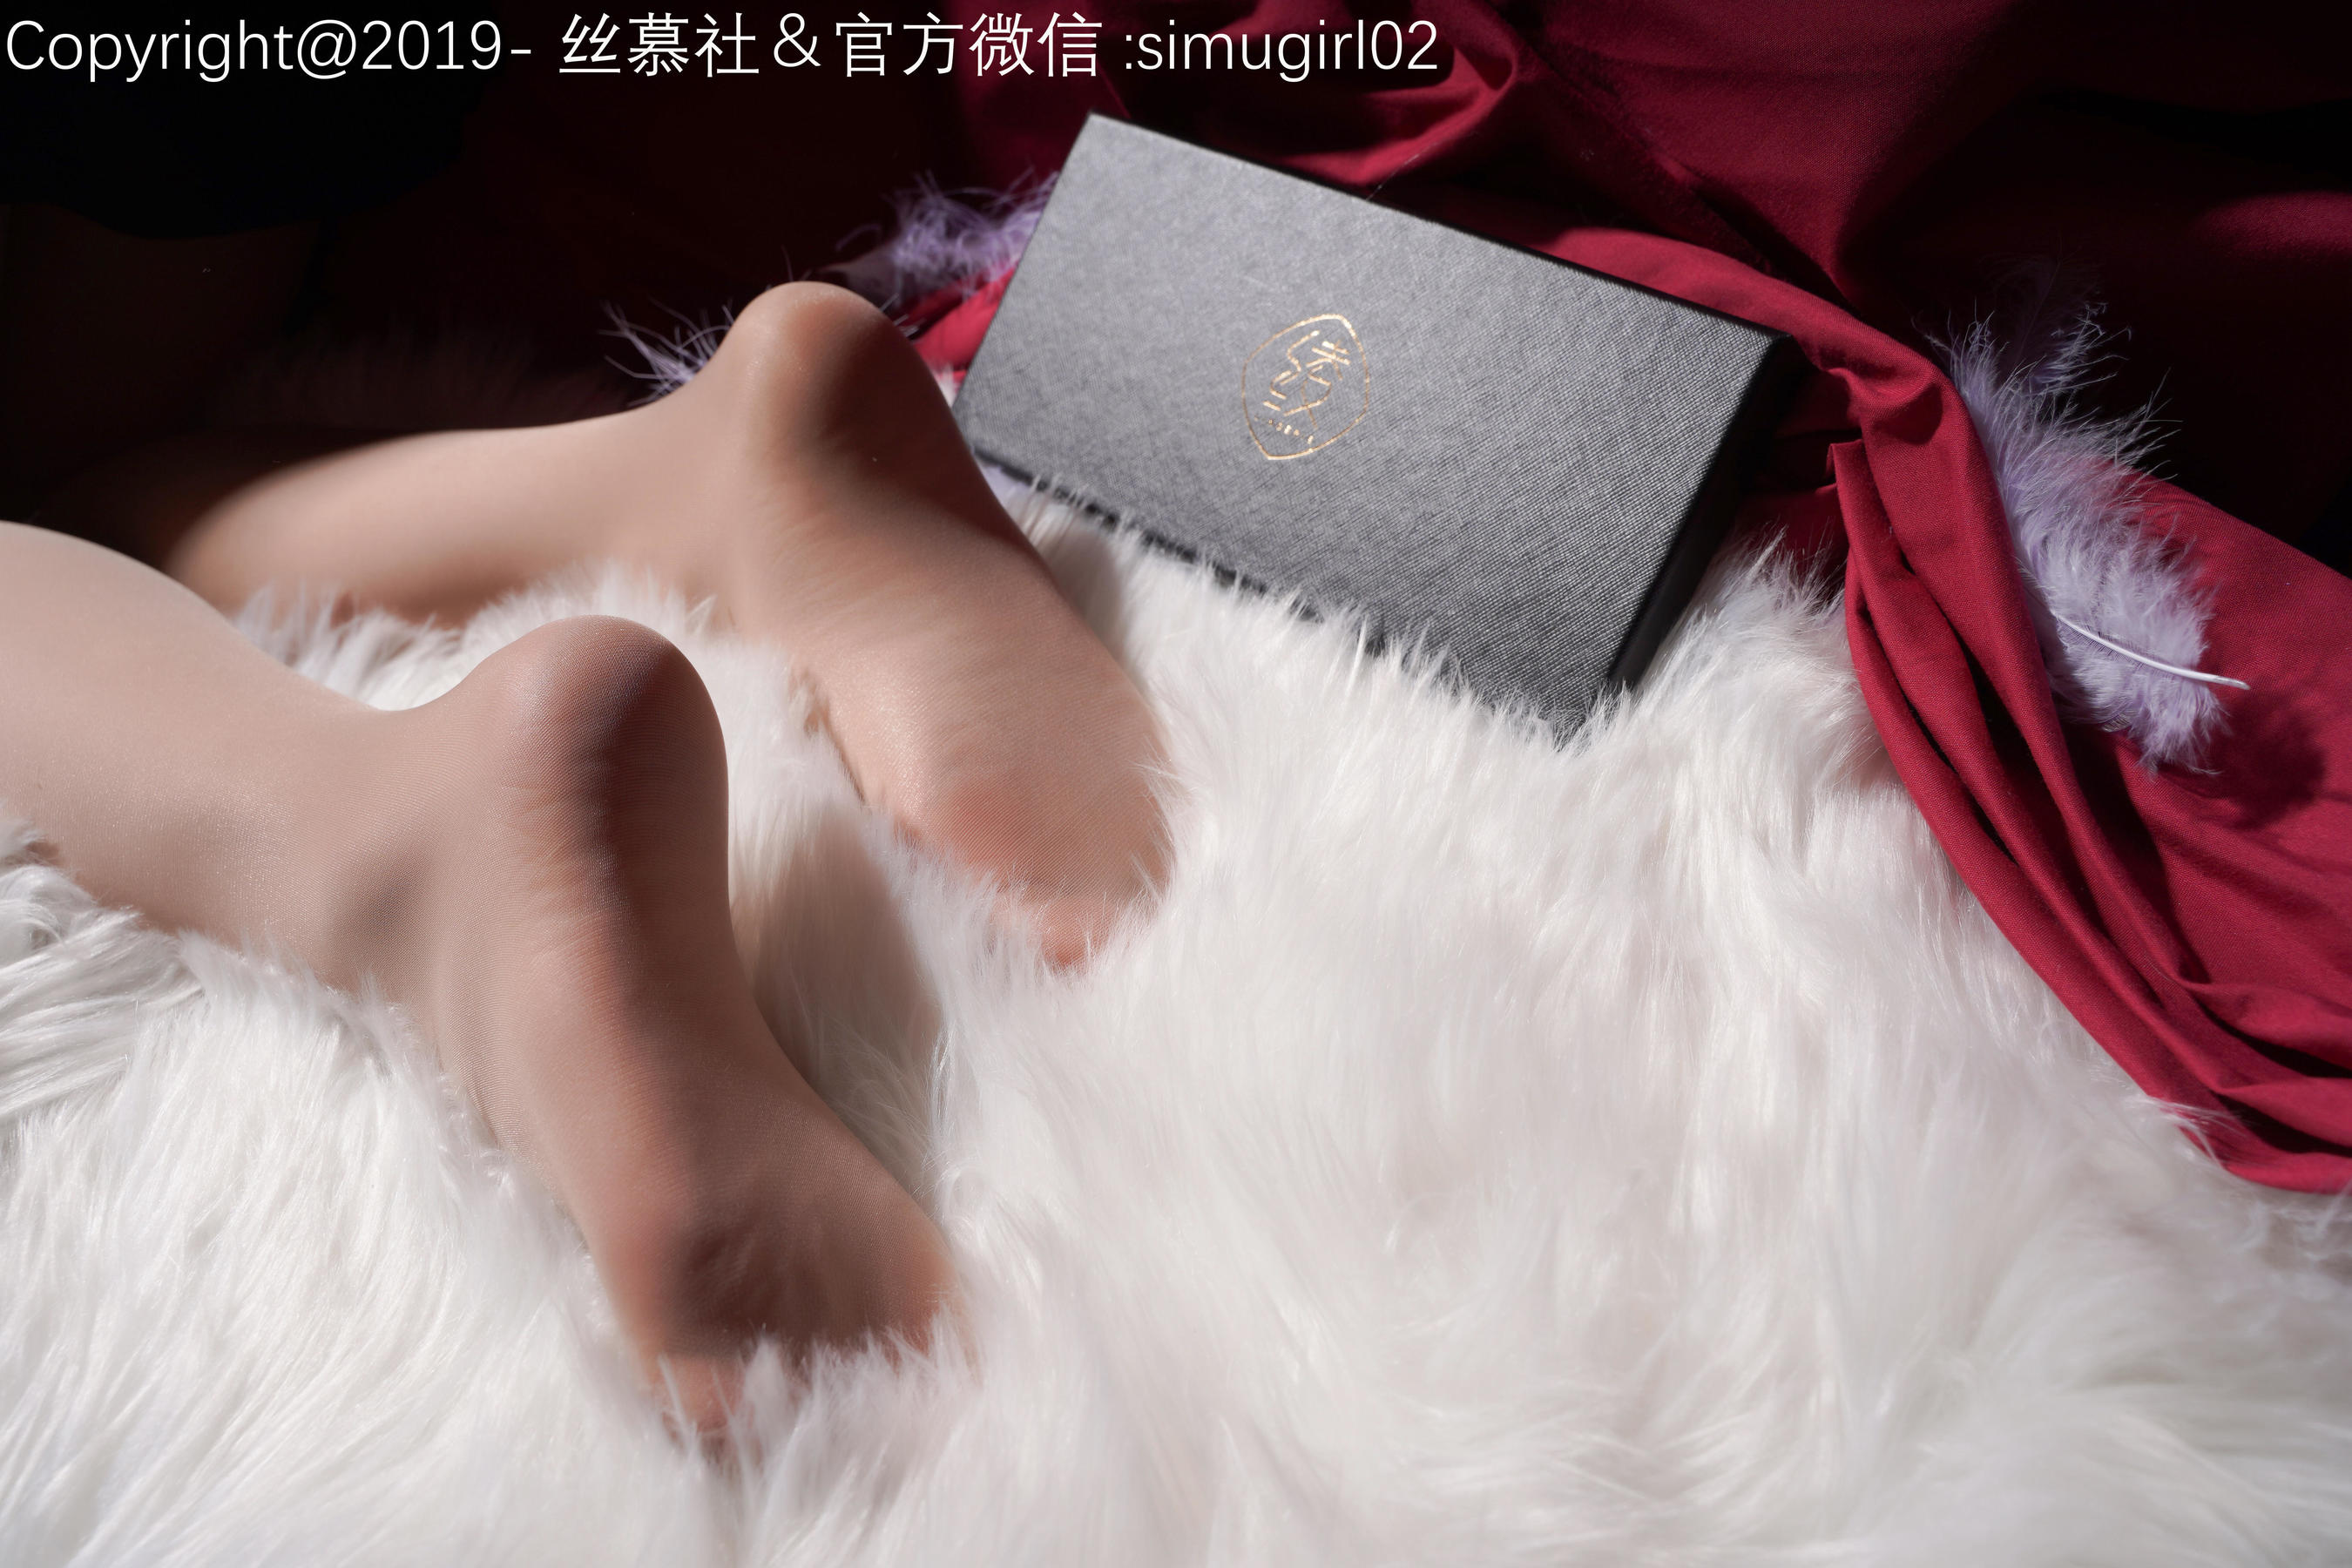 """[Simu] SM016 Linlin-""""The Goddess of the Republic of China"""" 49"""